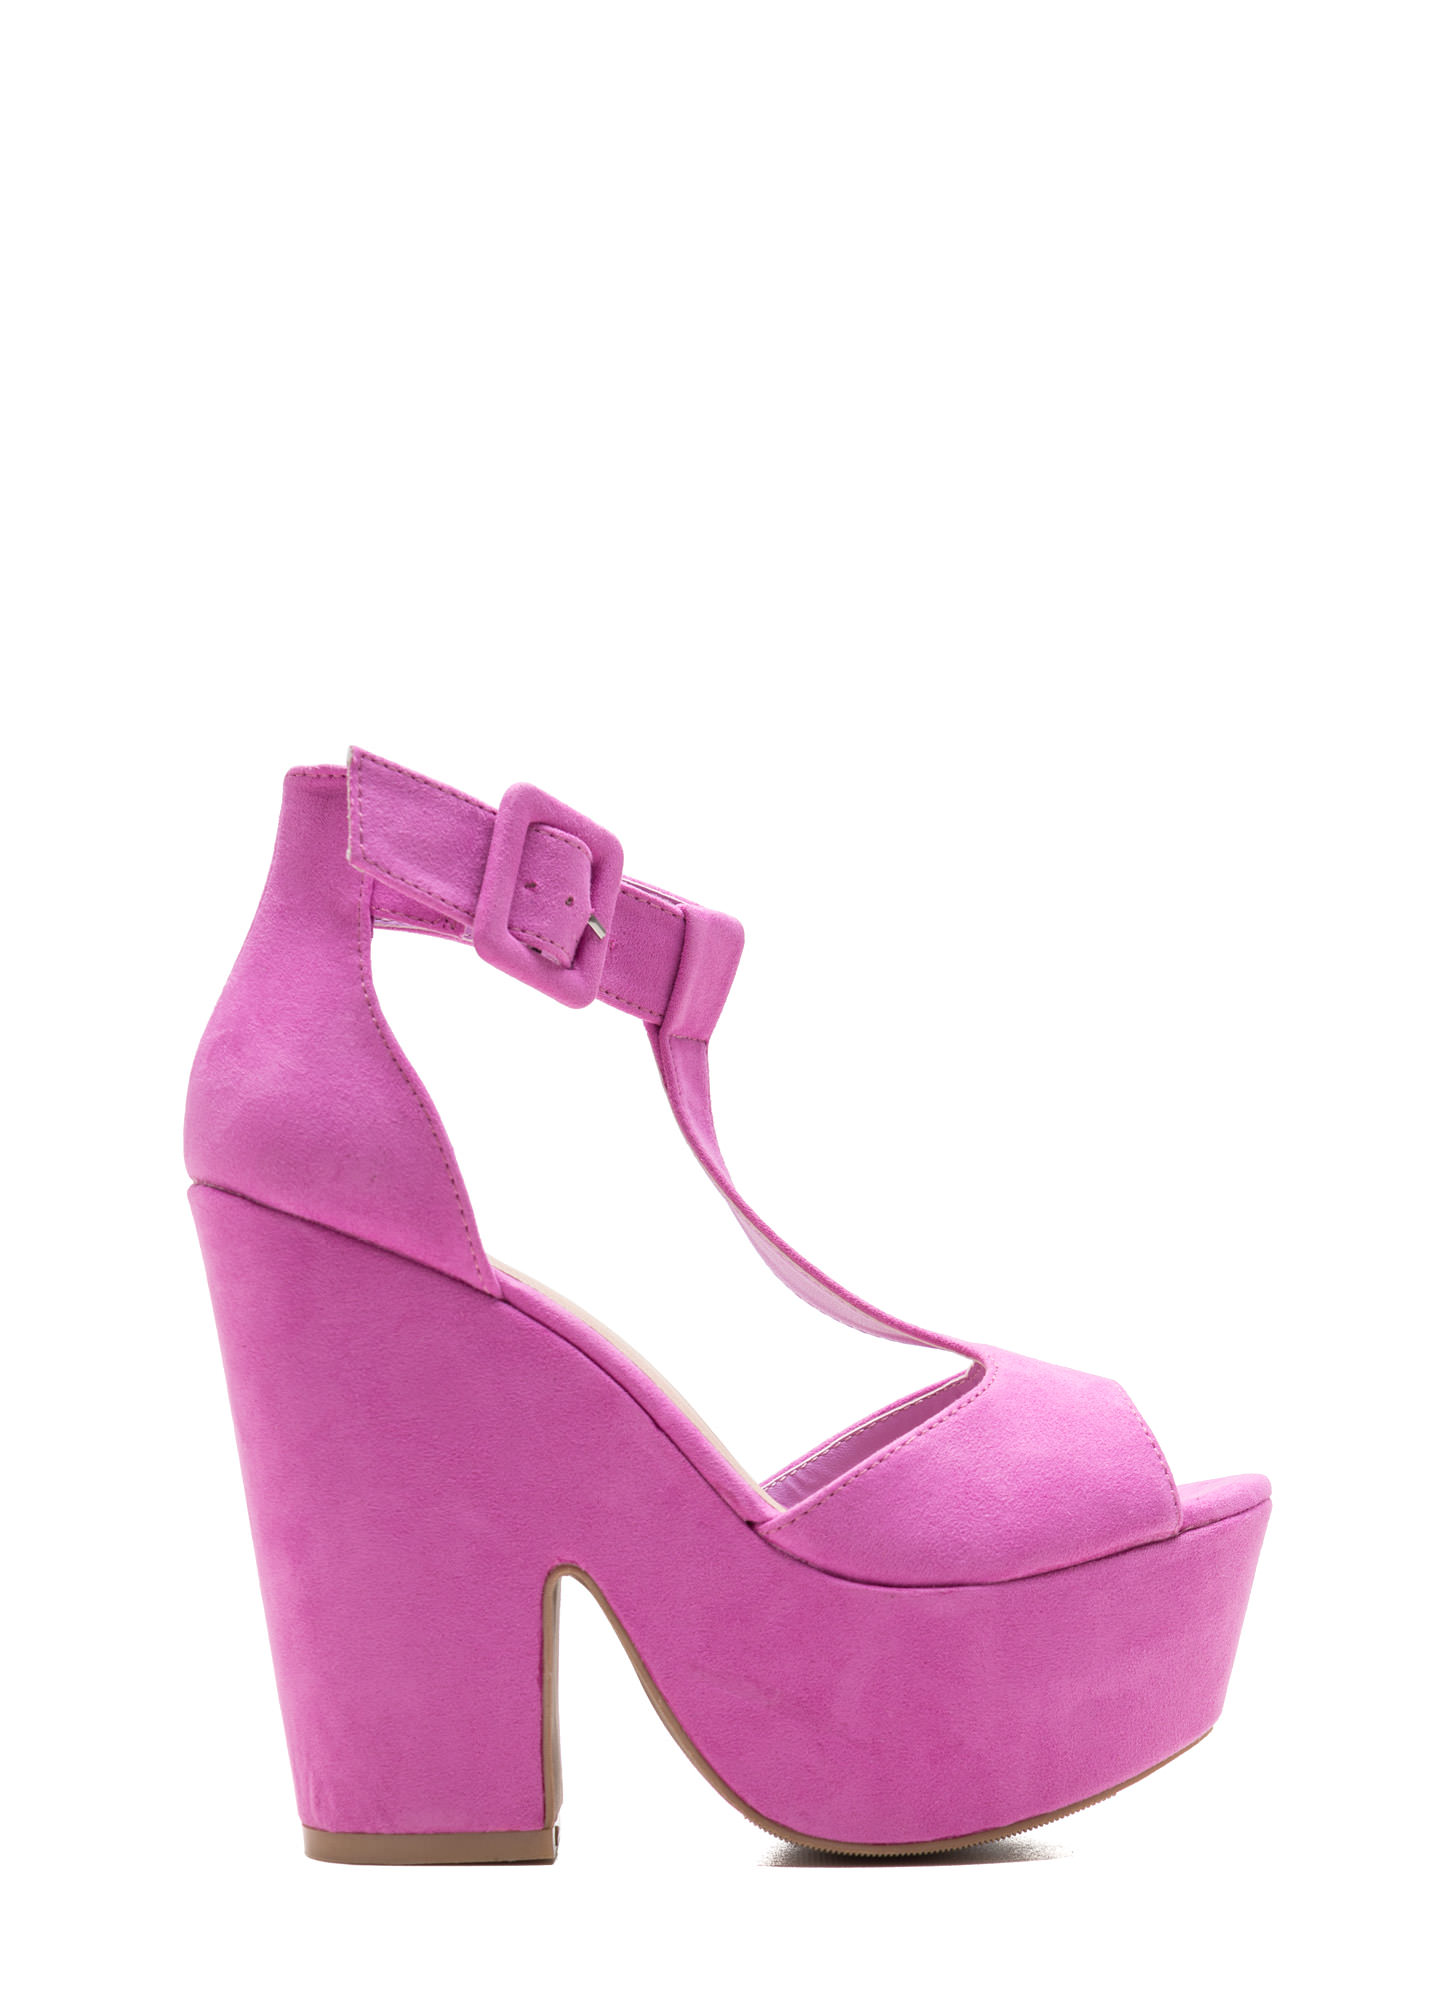 Thru Thick 'N Thin Faux Suede Heels ORCHID